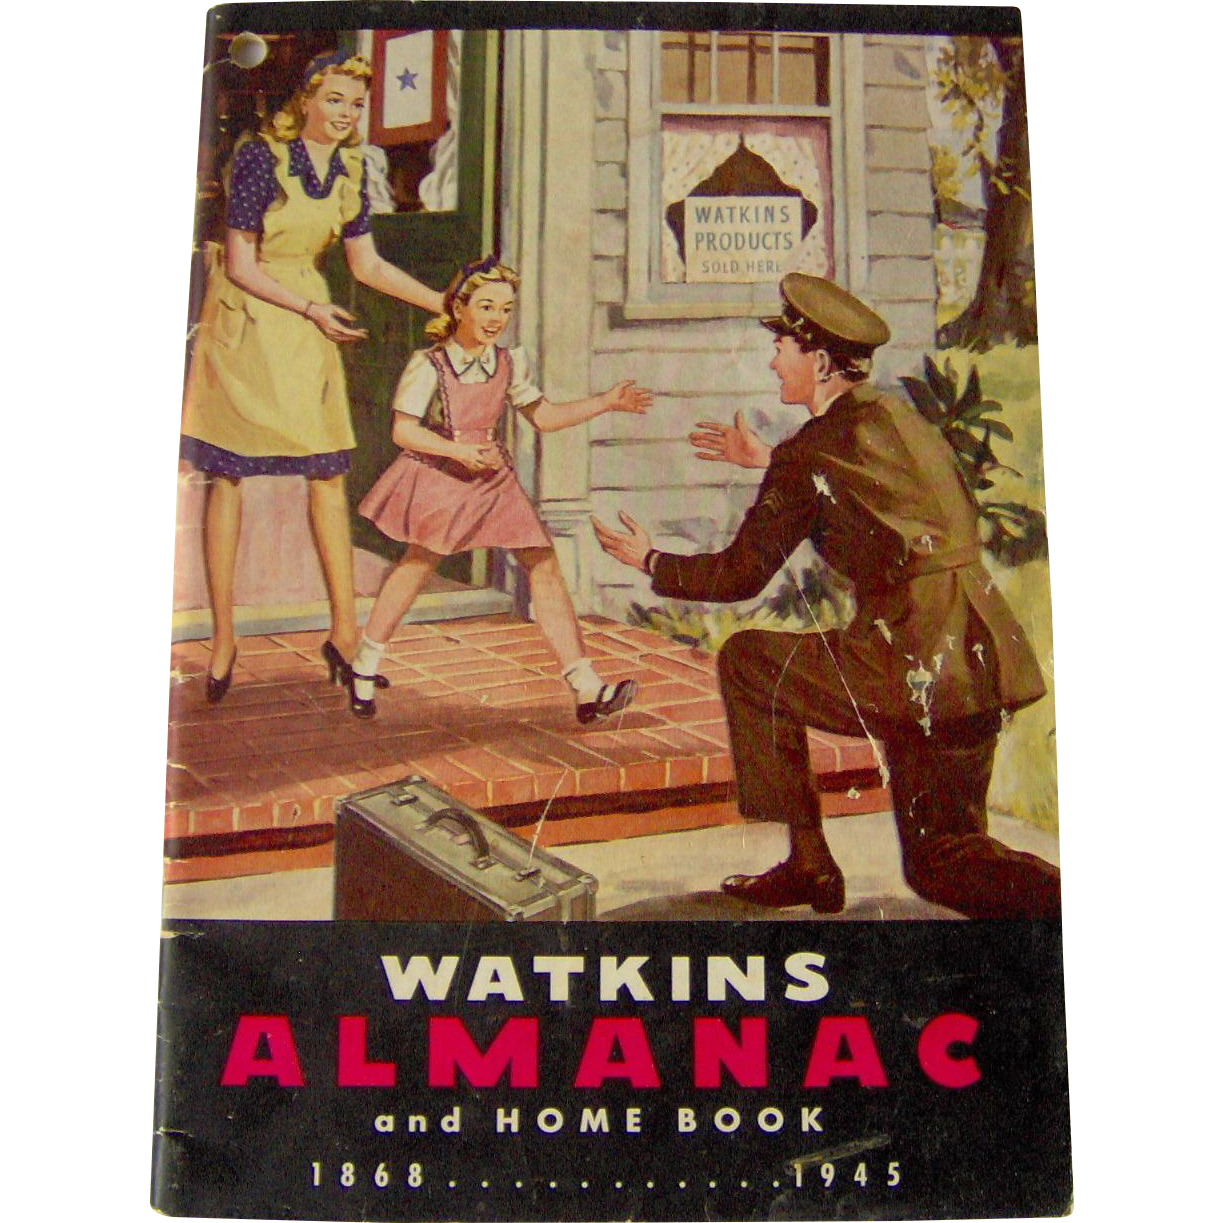 1945 Watkins Almanac and Home Book